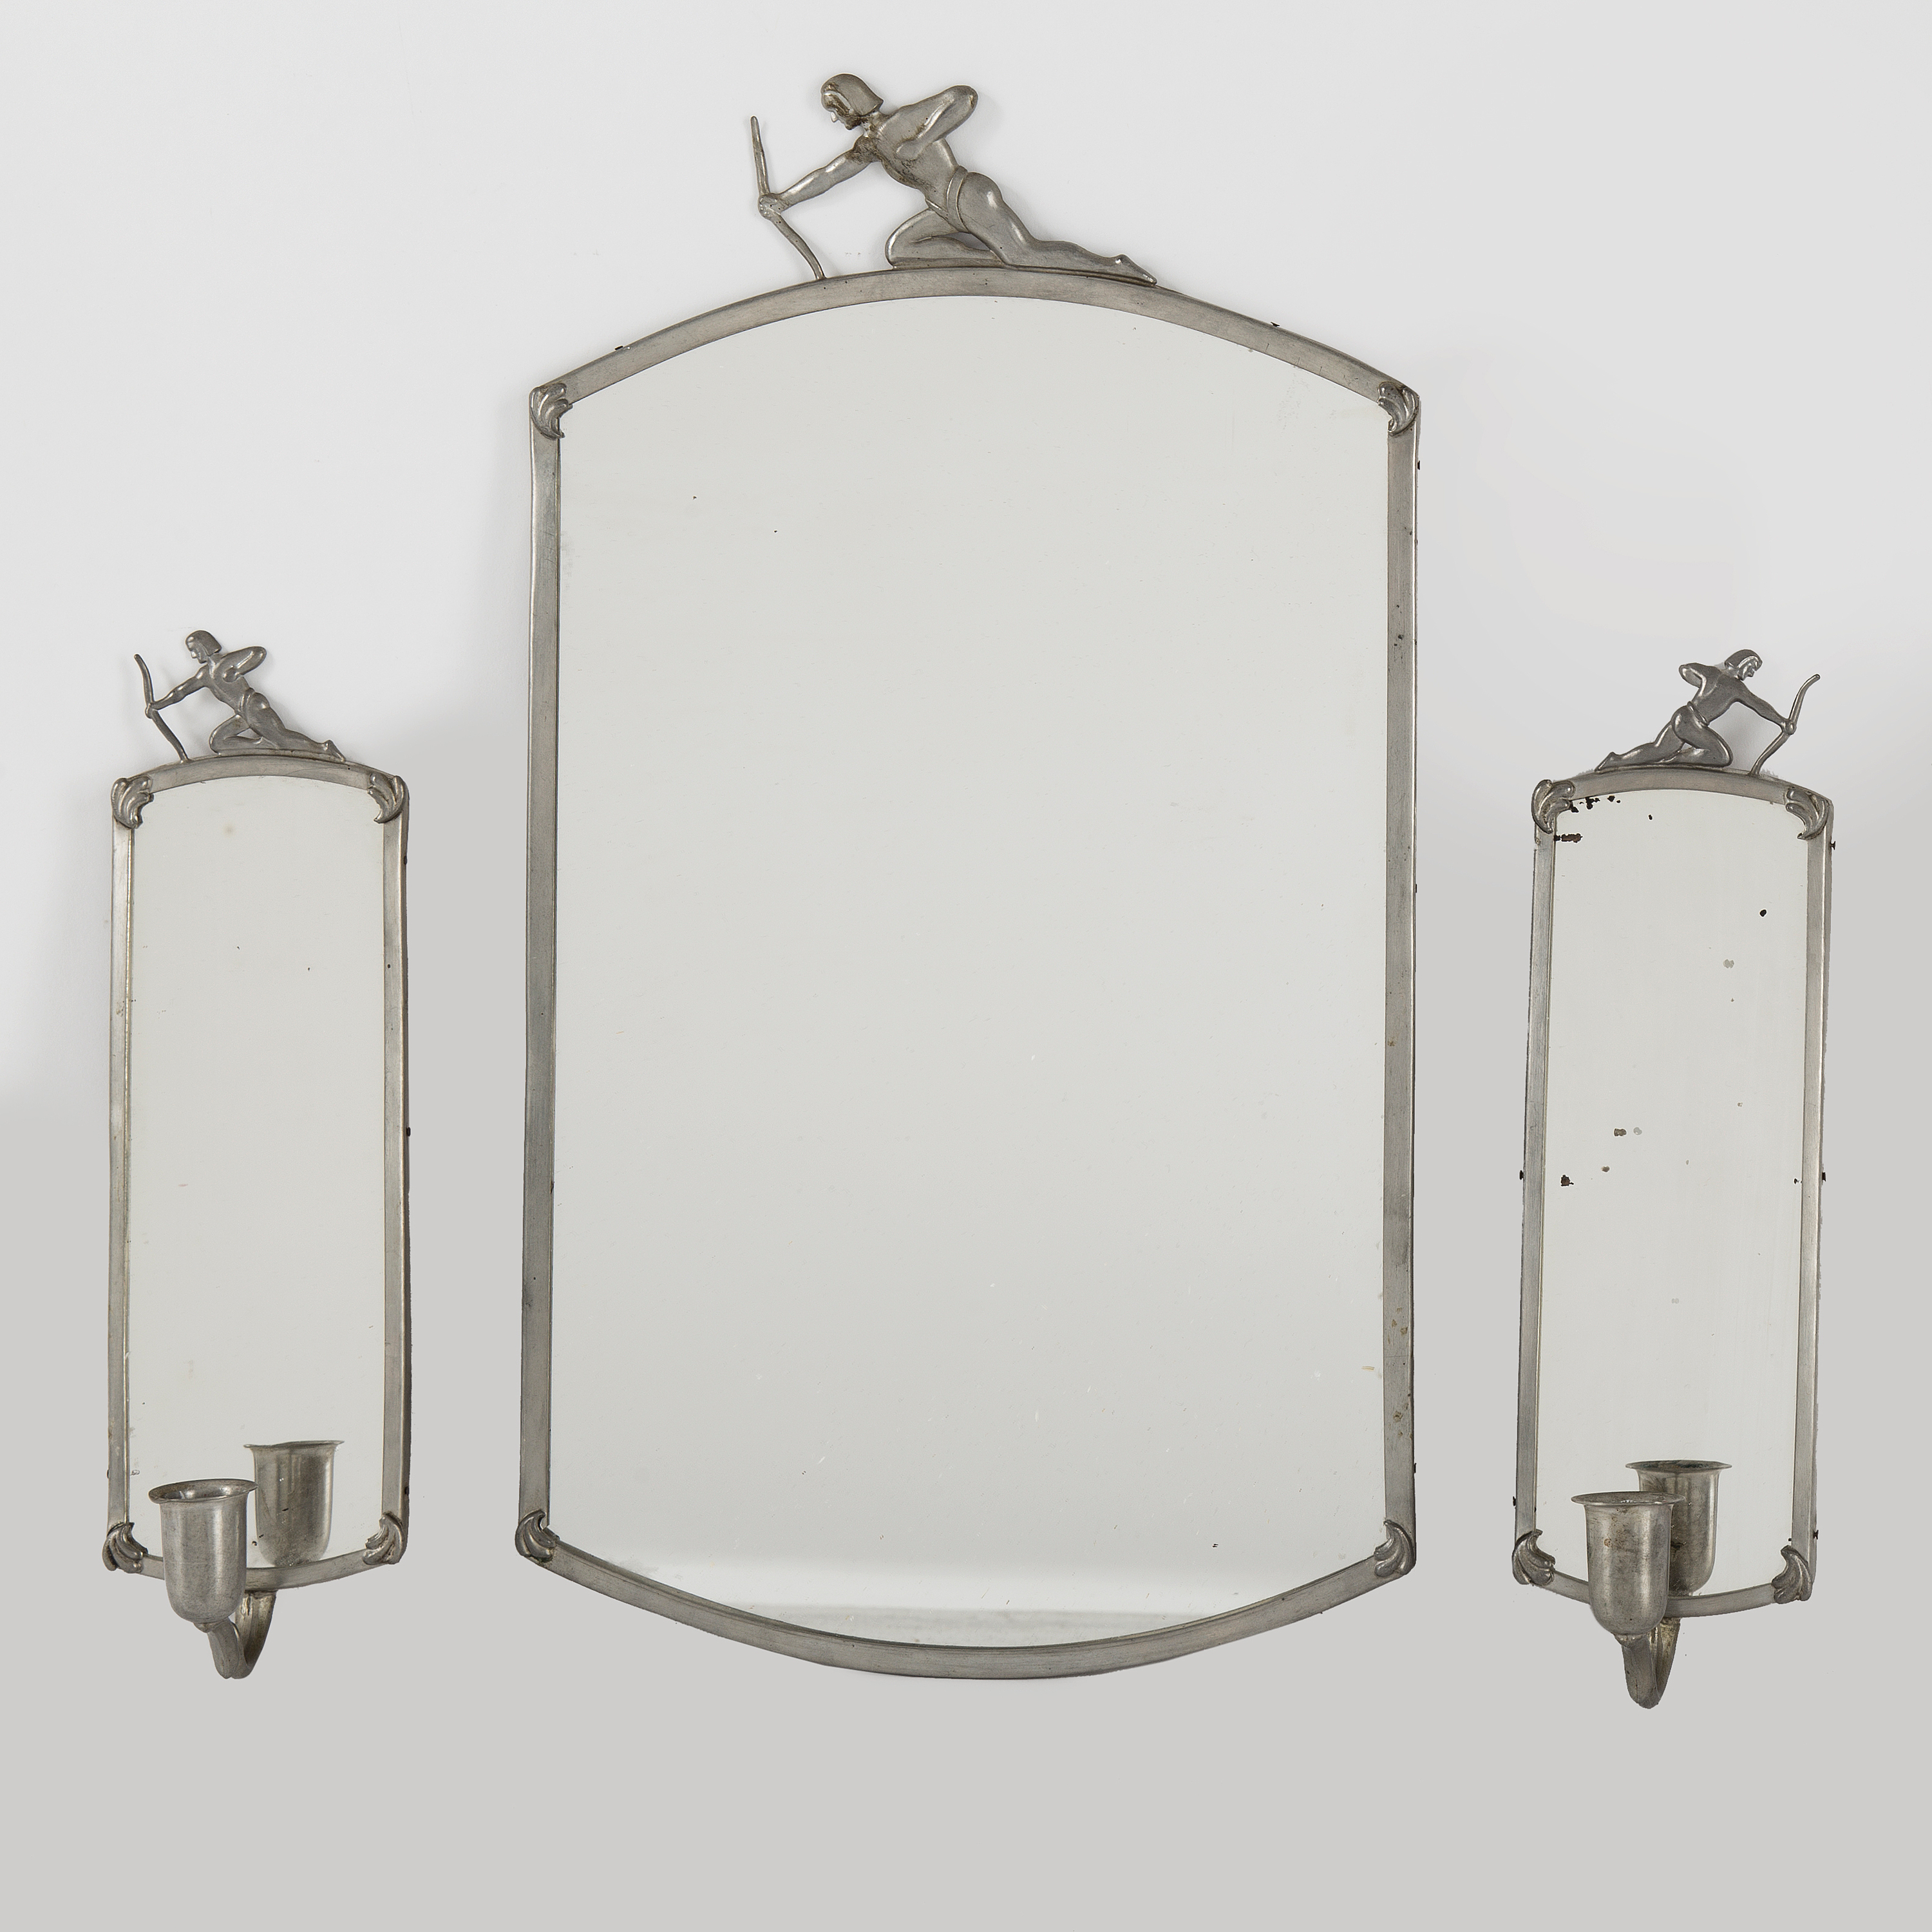 A Swedish Pewter Framed Mirror And Pair Of Wall Sconces 1930s